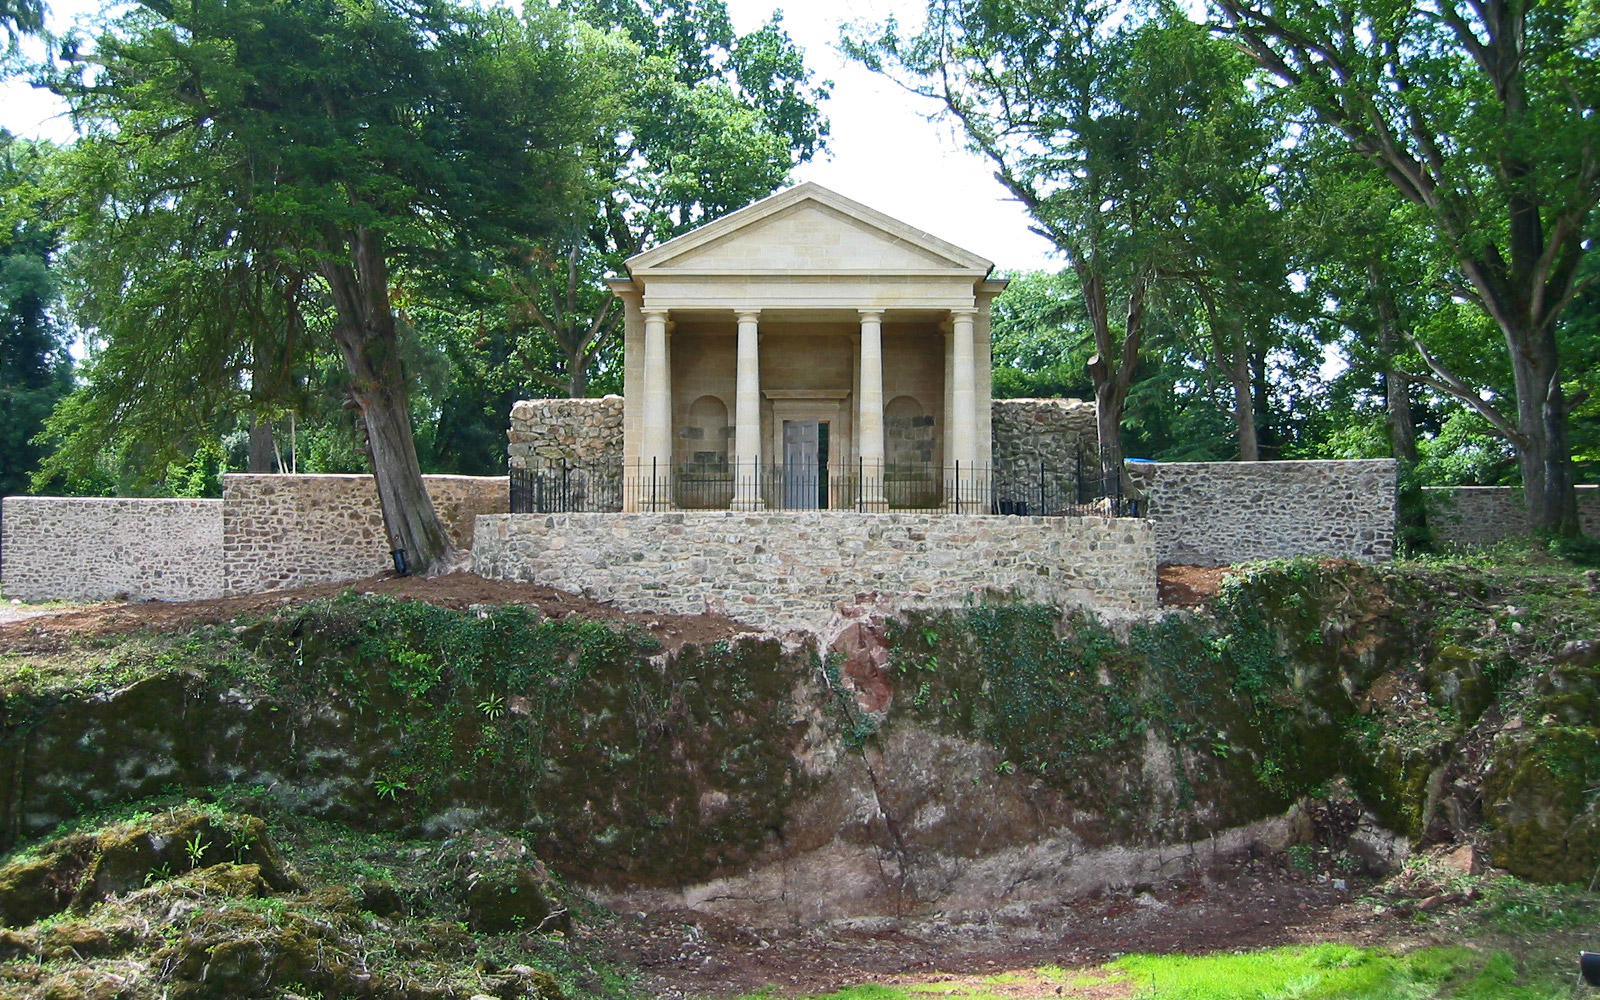 Restoration & Rebuild of C18th Folly